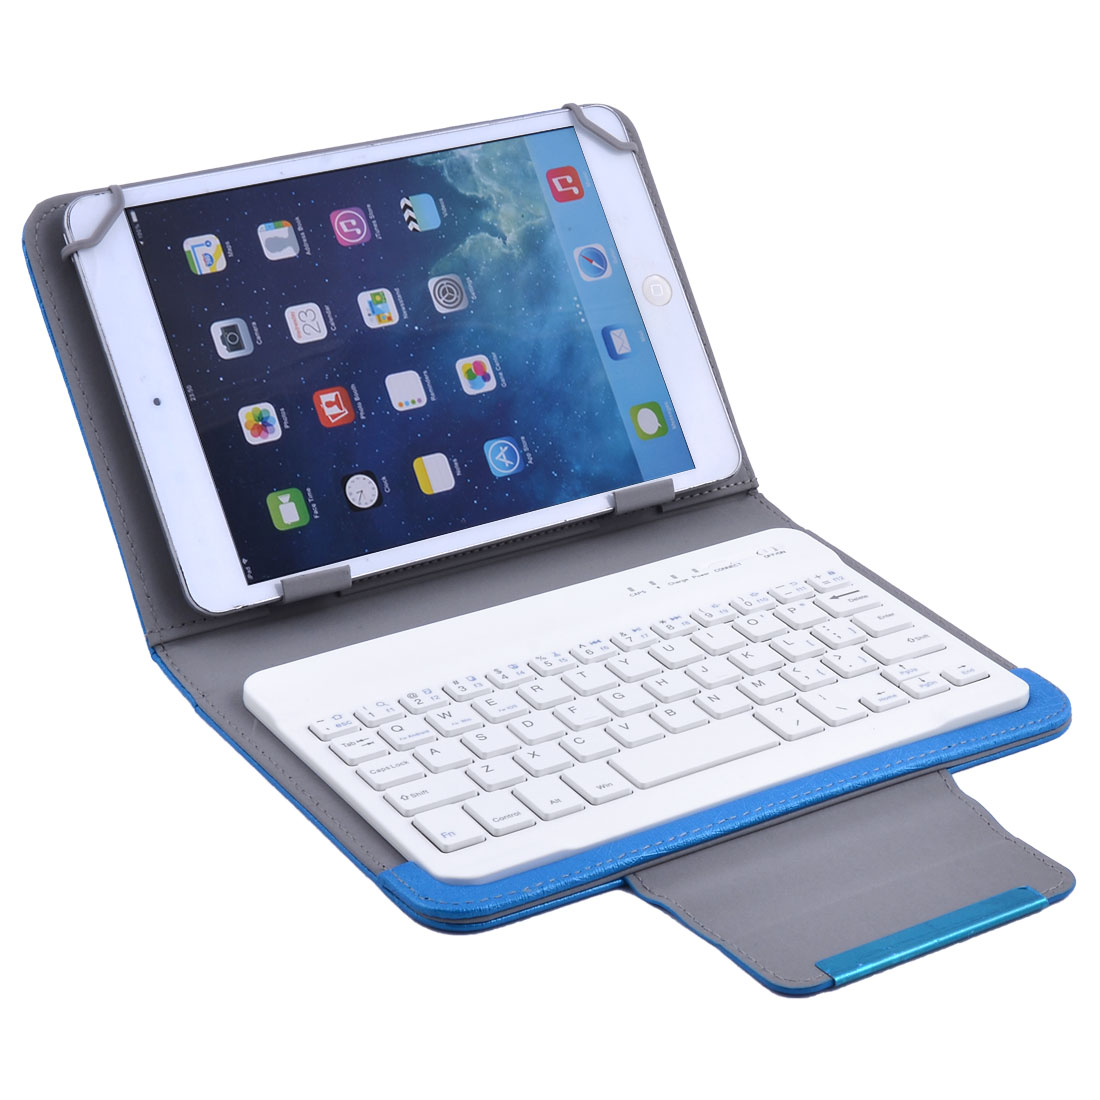 Unique Bargains PU Leather  Keyboard Leather Cover Case Blue for 7 Inch 8 Inch Tablet